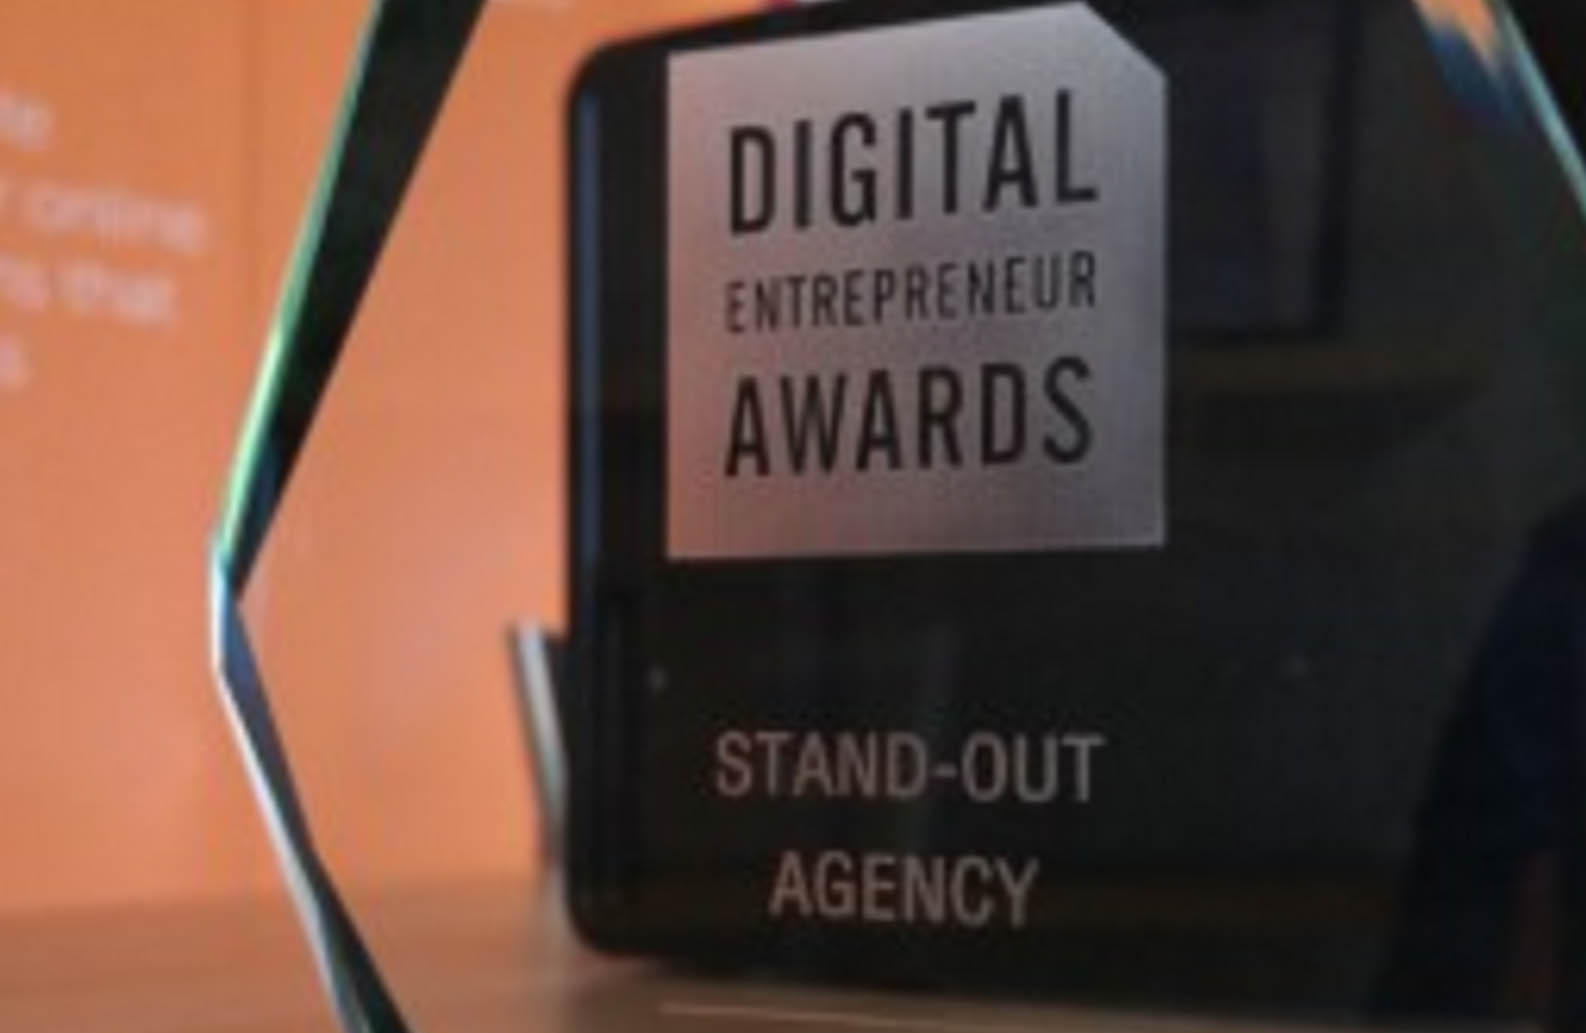 Stand-out Agency Award for PushON